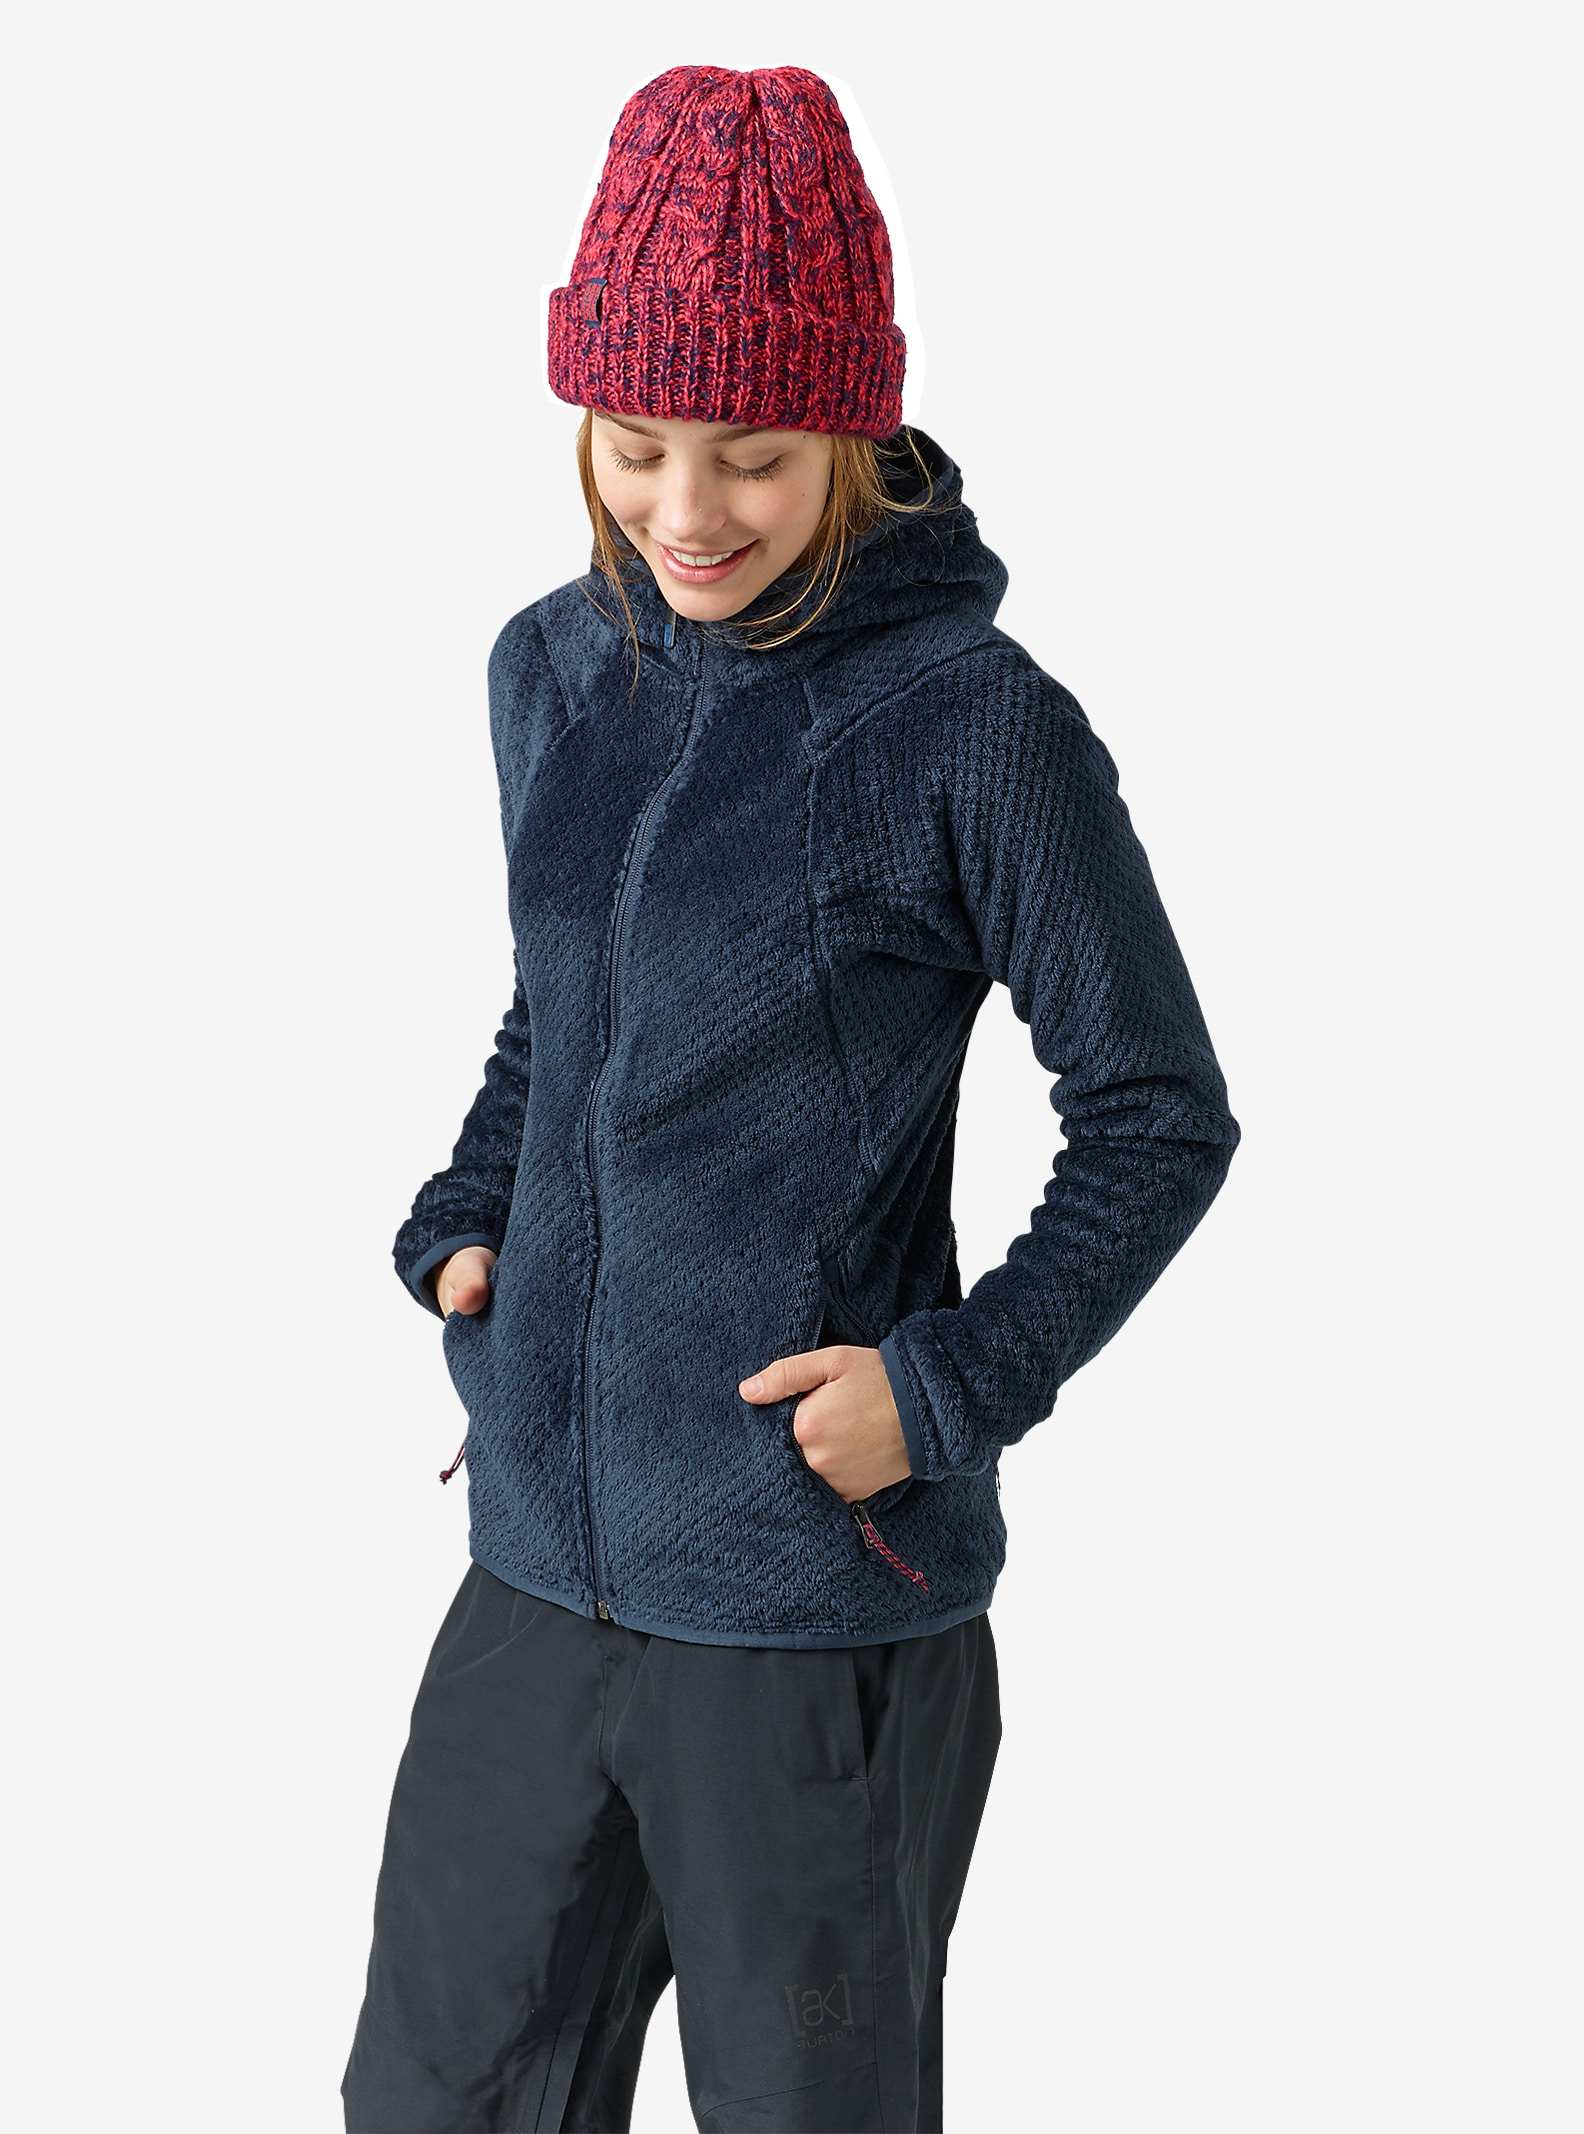 Burton [ak] Women's Turbine Fleece shown in Eclipse